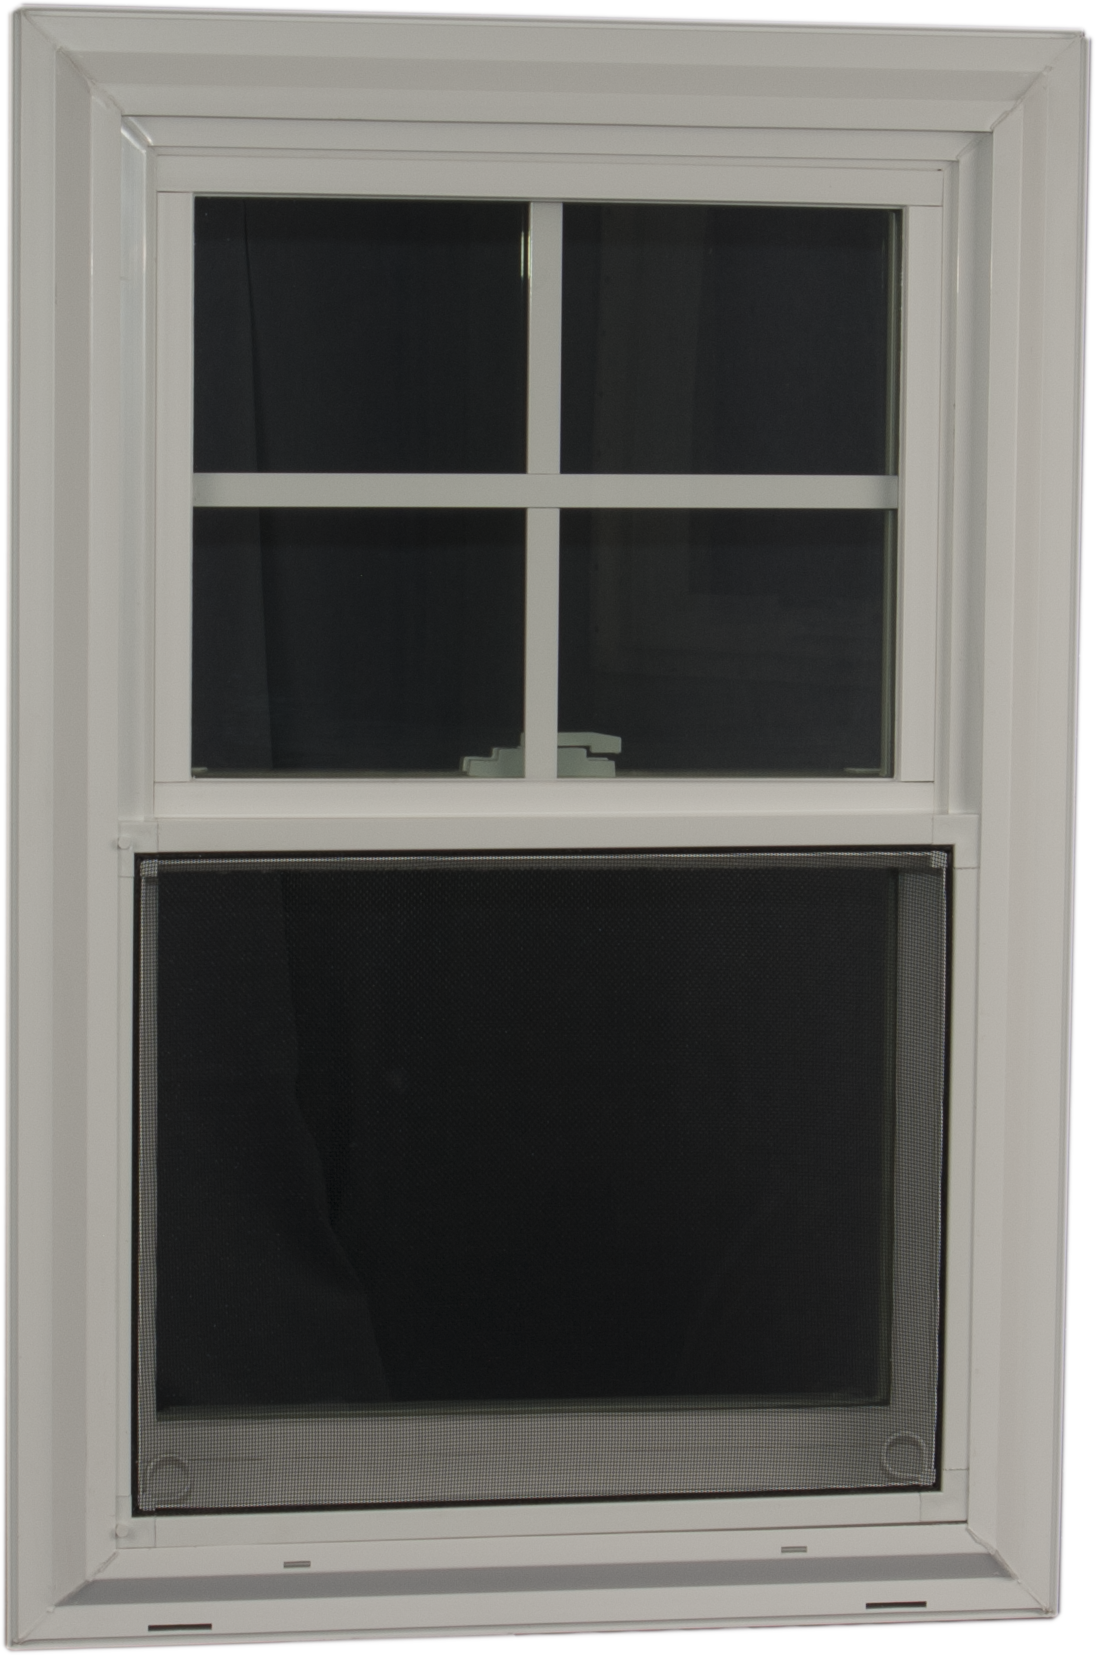 double hung windows vinyl window manufacturer